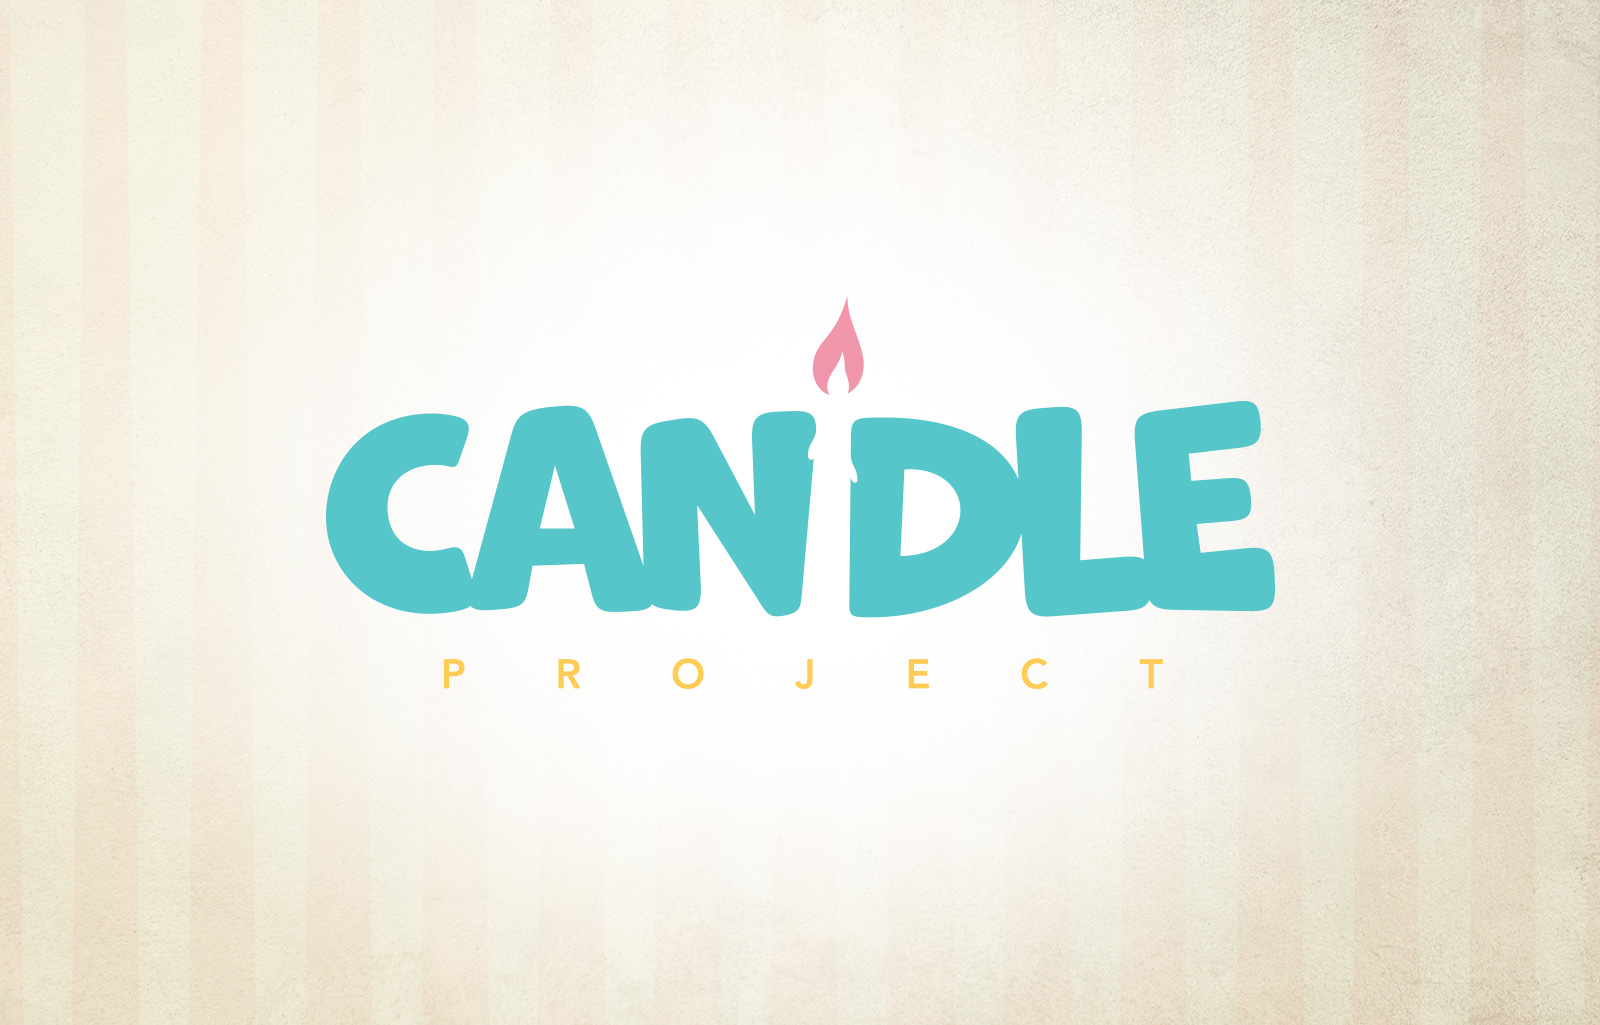 logo candle project Diego Favaretto Web designer